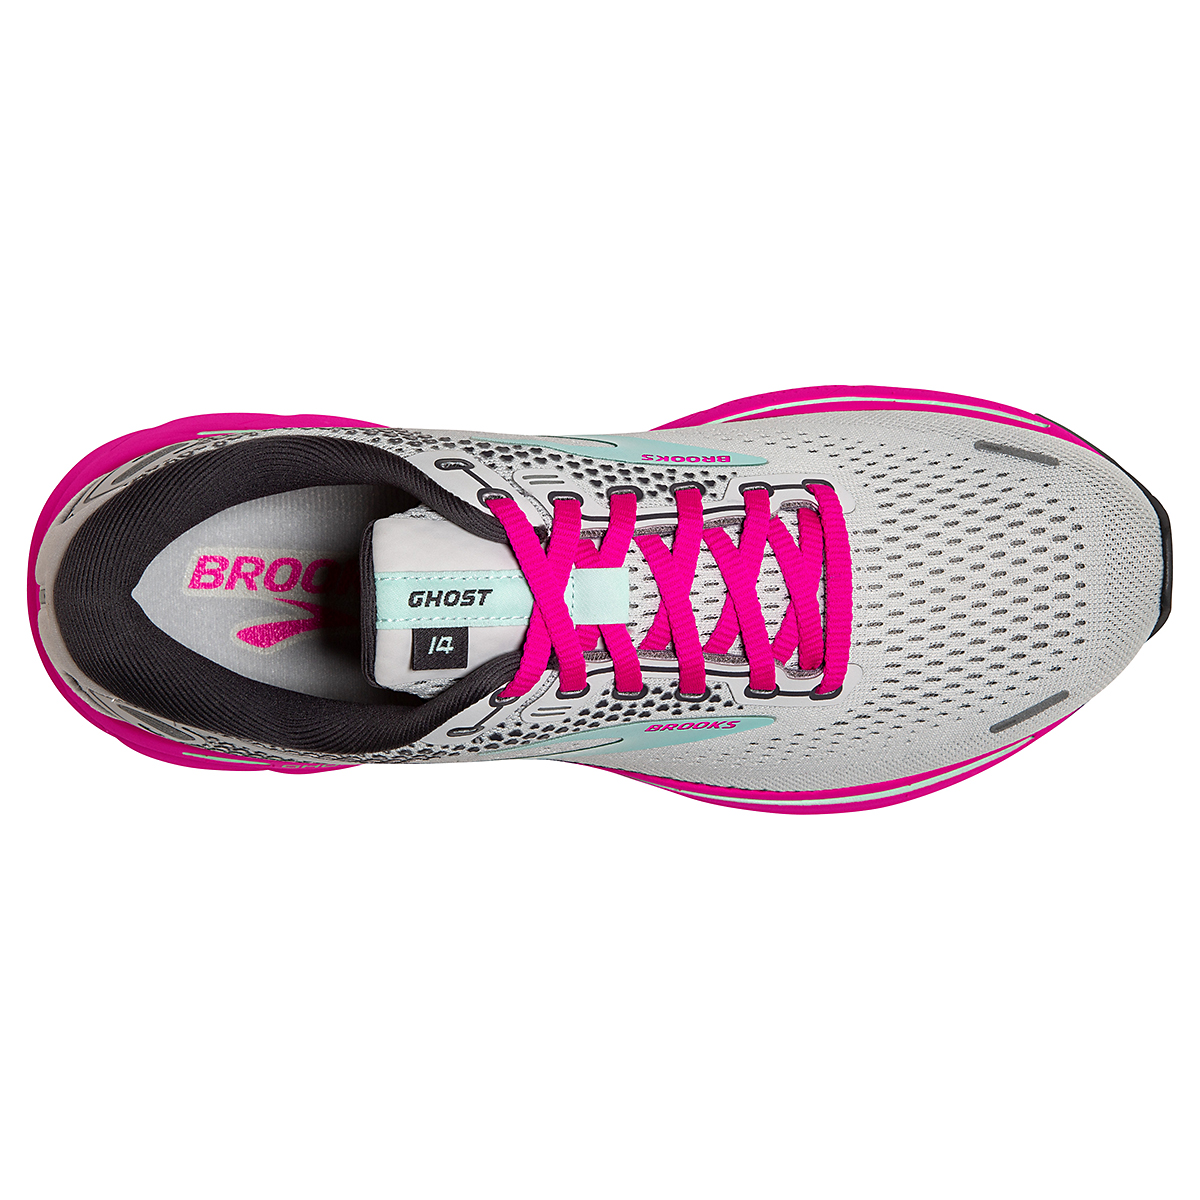 Women's Brooks Ghost 14 Running Shoe - Color: Oyster/Yucca/Pink - Size: 5 - Width: Regular, Oyster/Yucca/Pink, large, image 5